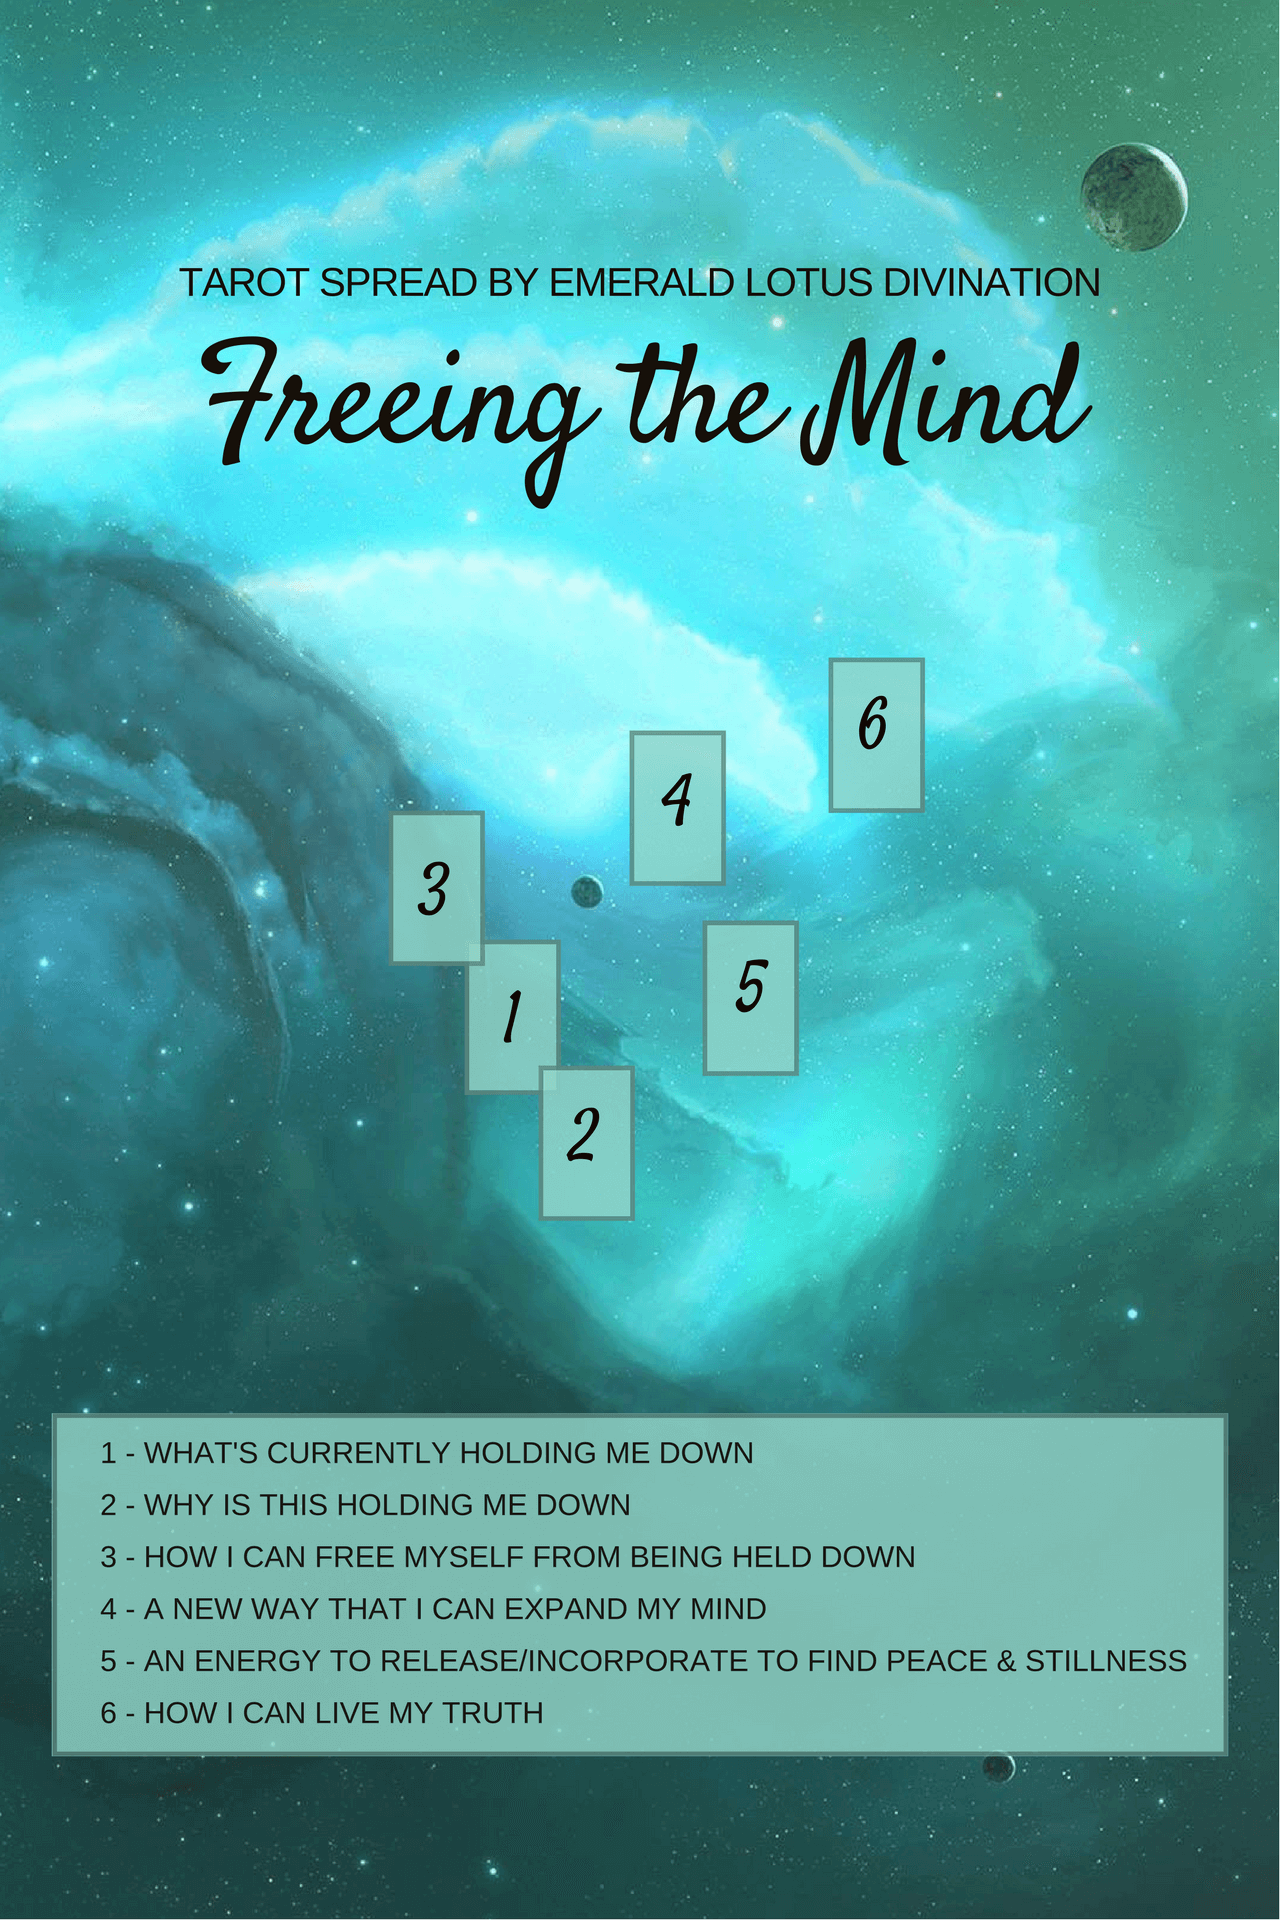 freeing-the-mind-tarot-spread-1-1.png